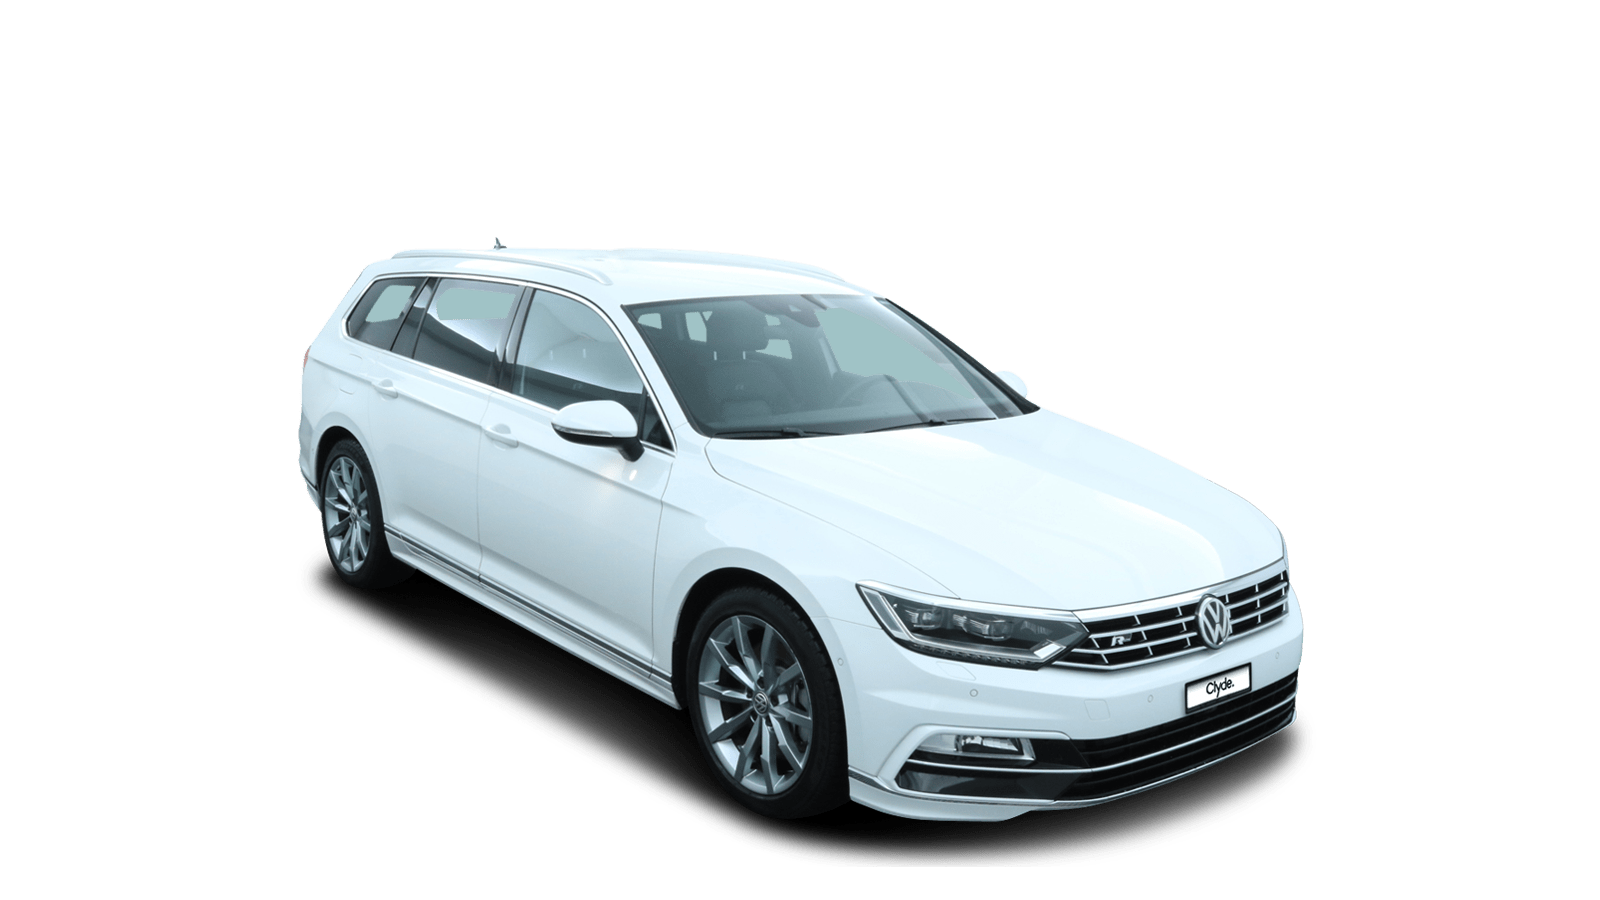 VW Passat Variant White front - Clyde car subscription